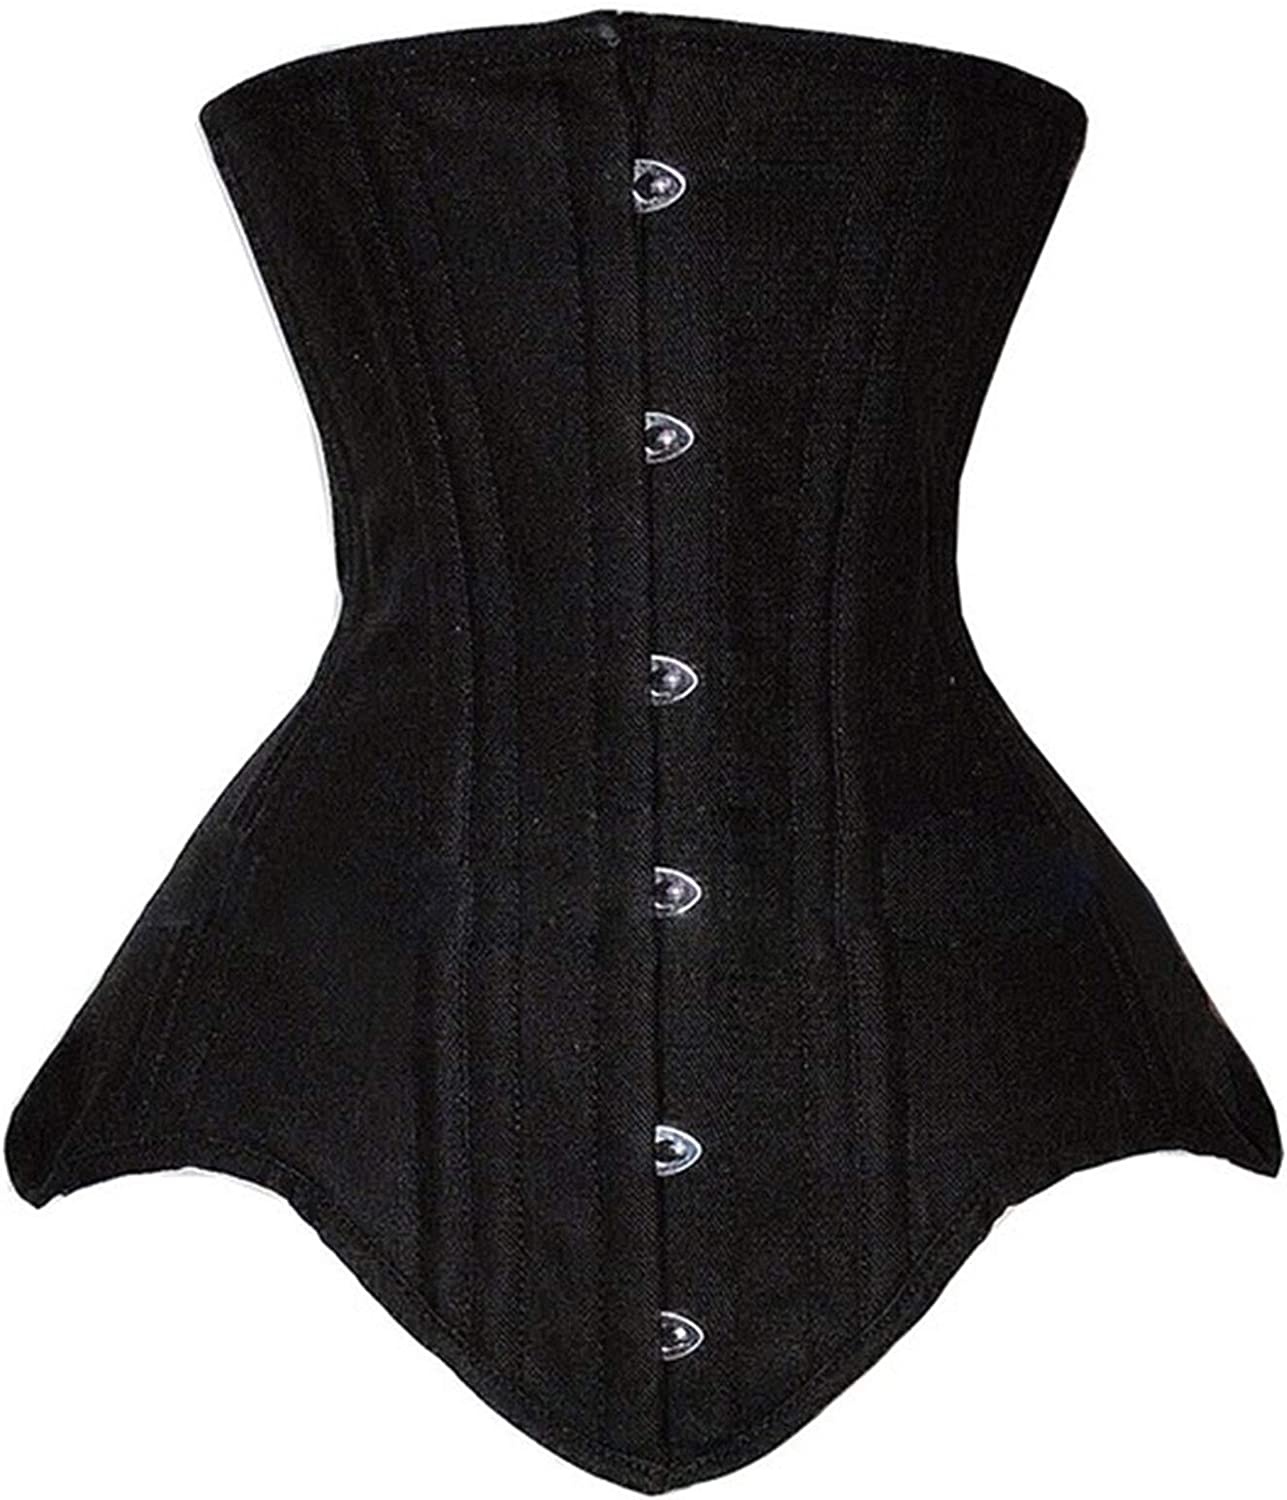 Super Special SALE held Latex Waist Trainer Tummy Firm Control Vintage Shaper Body Max 90% OFF Plus